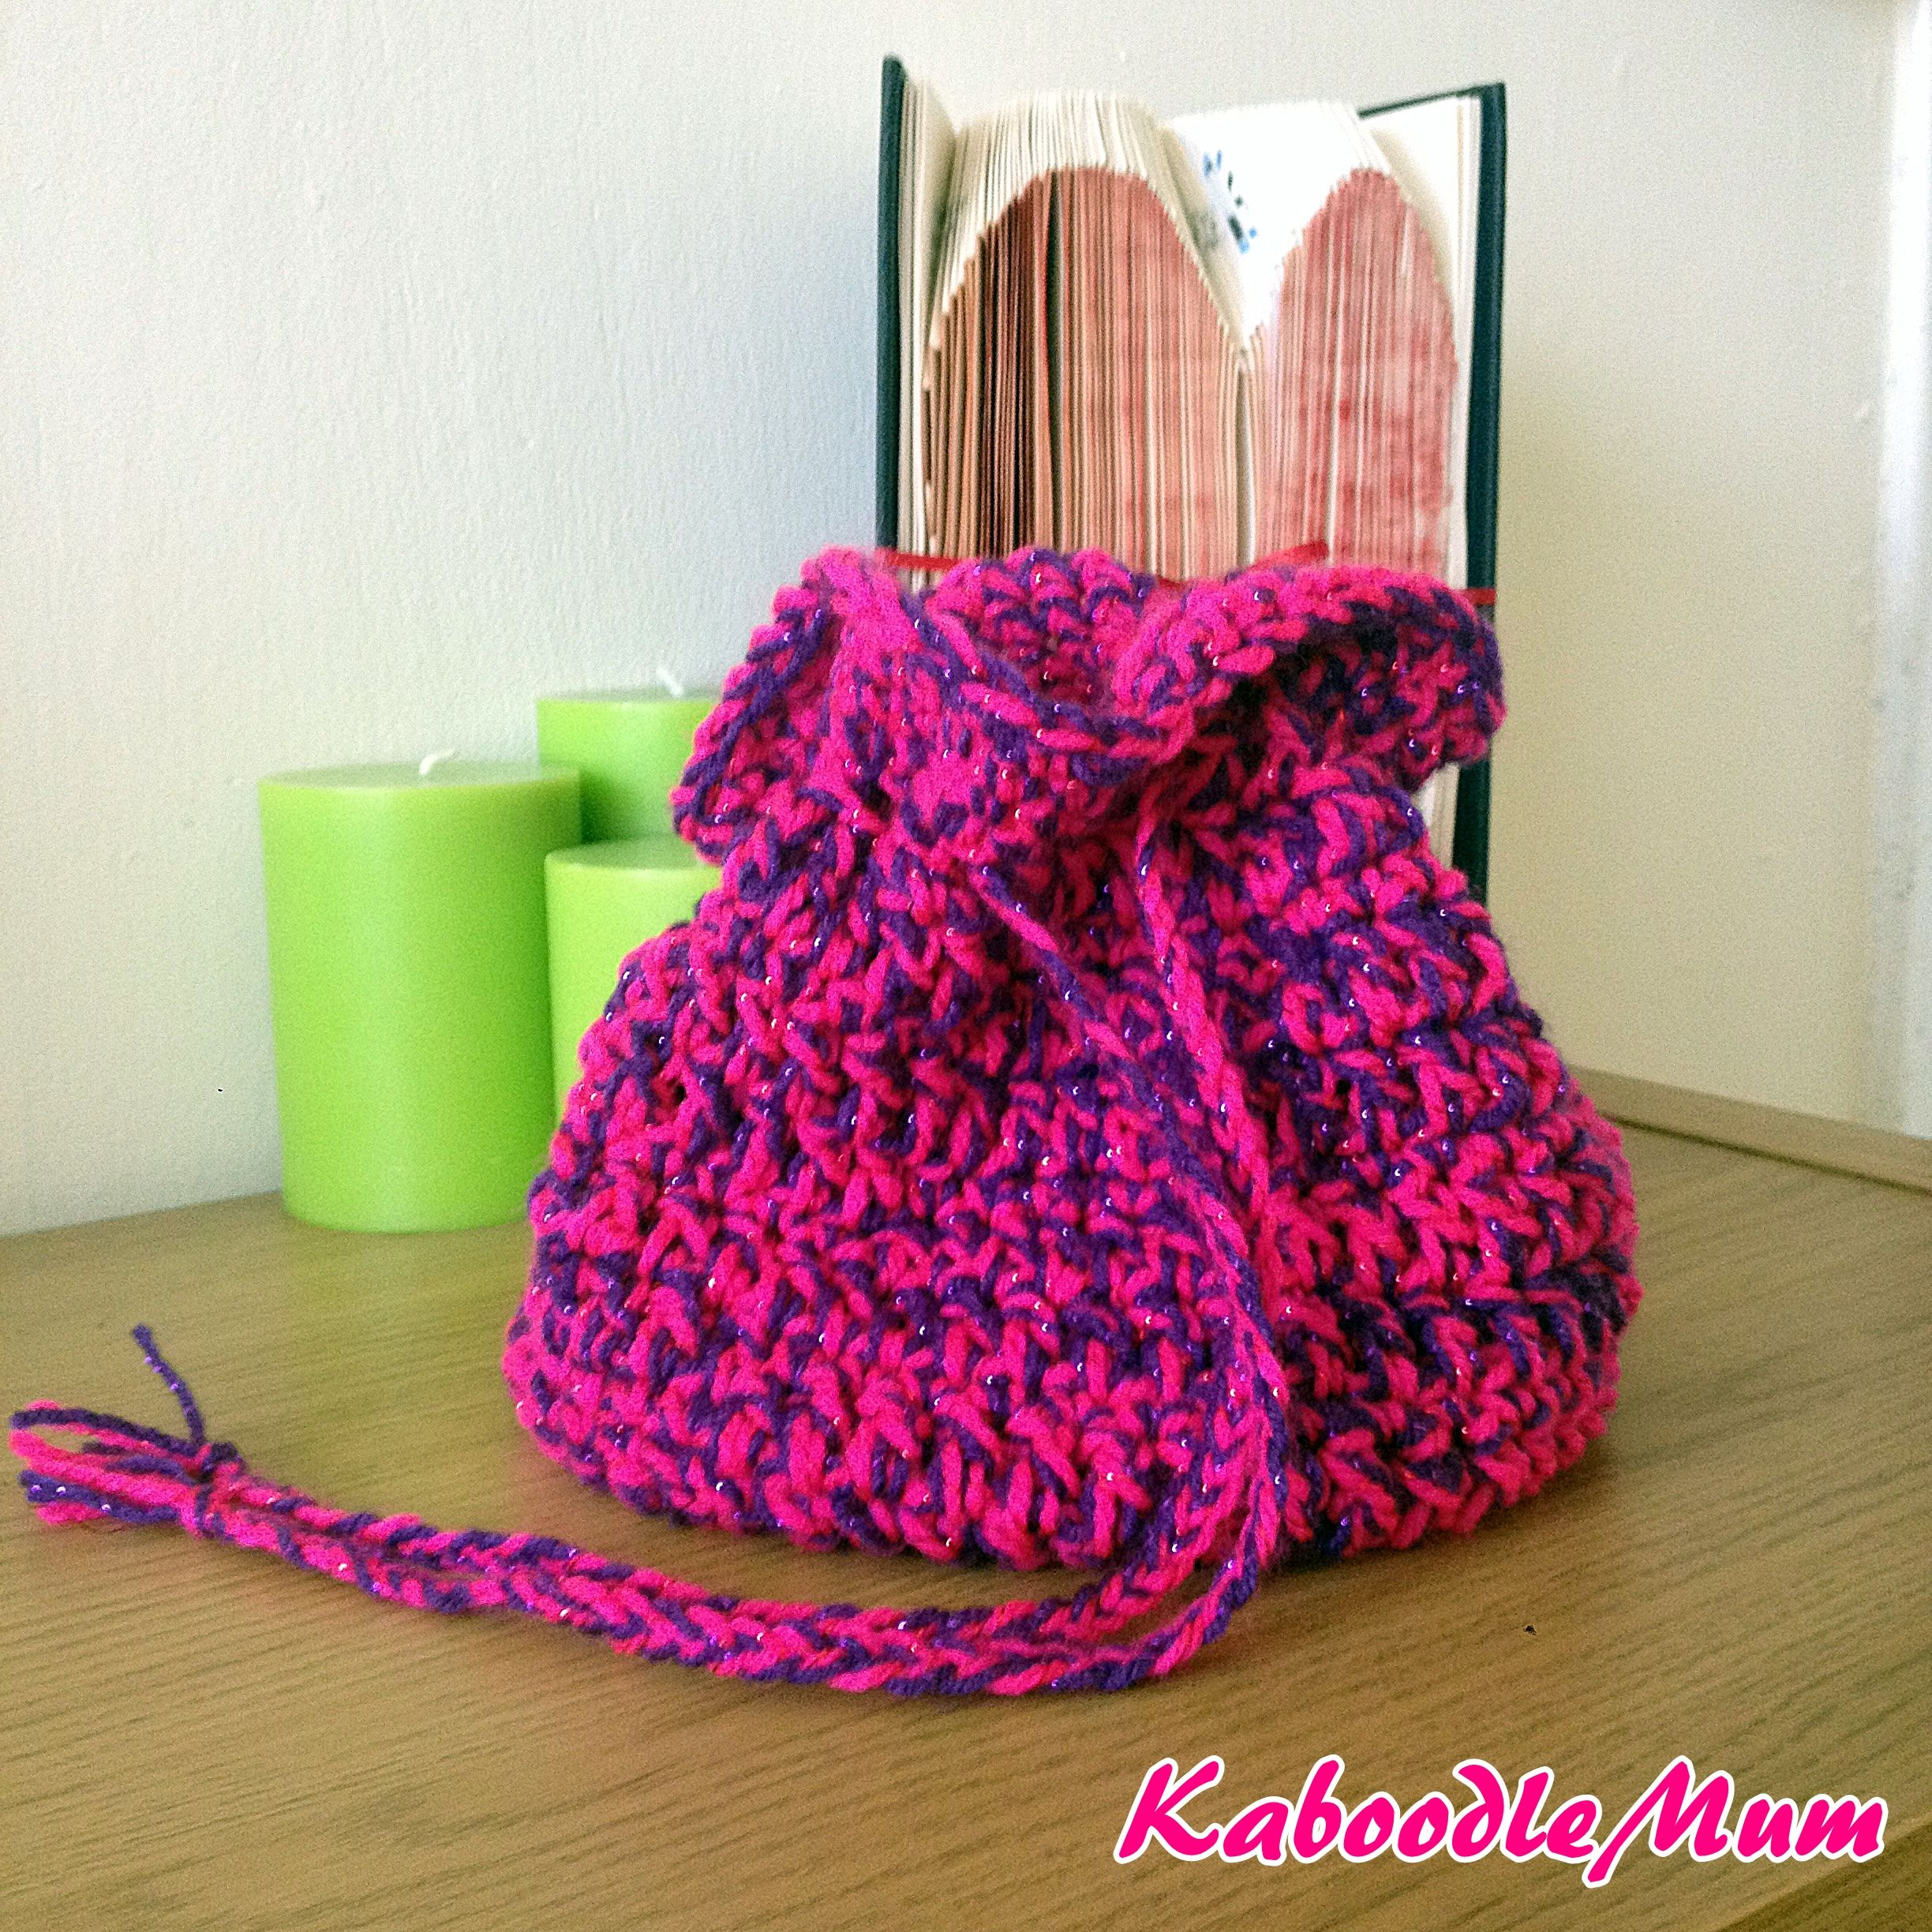 25 round drawstring bag - free crochet pattern by Faye Lobeck ...